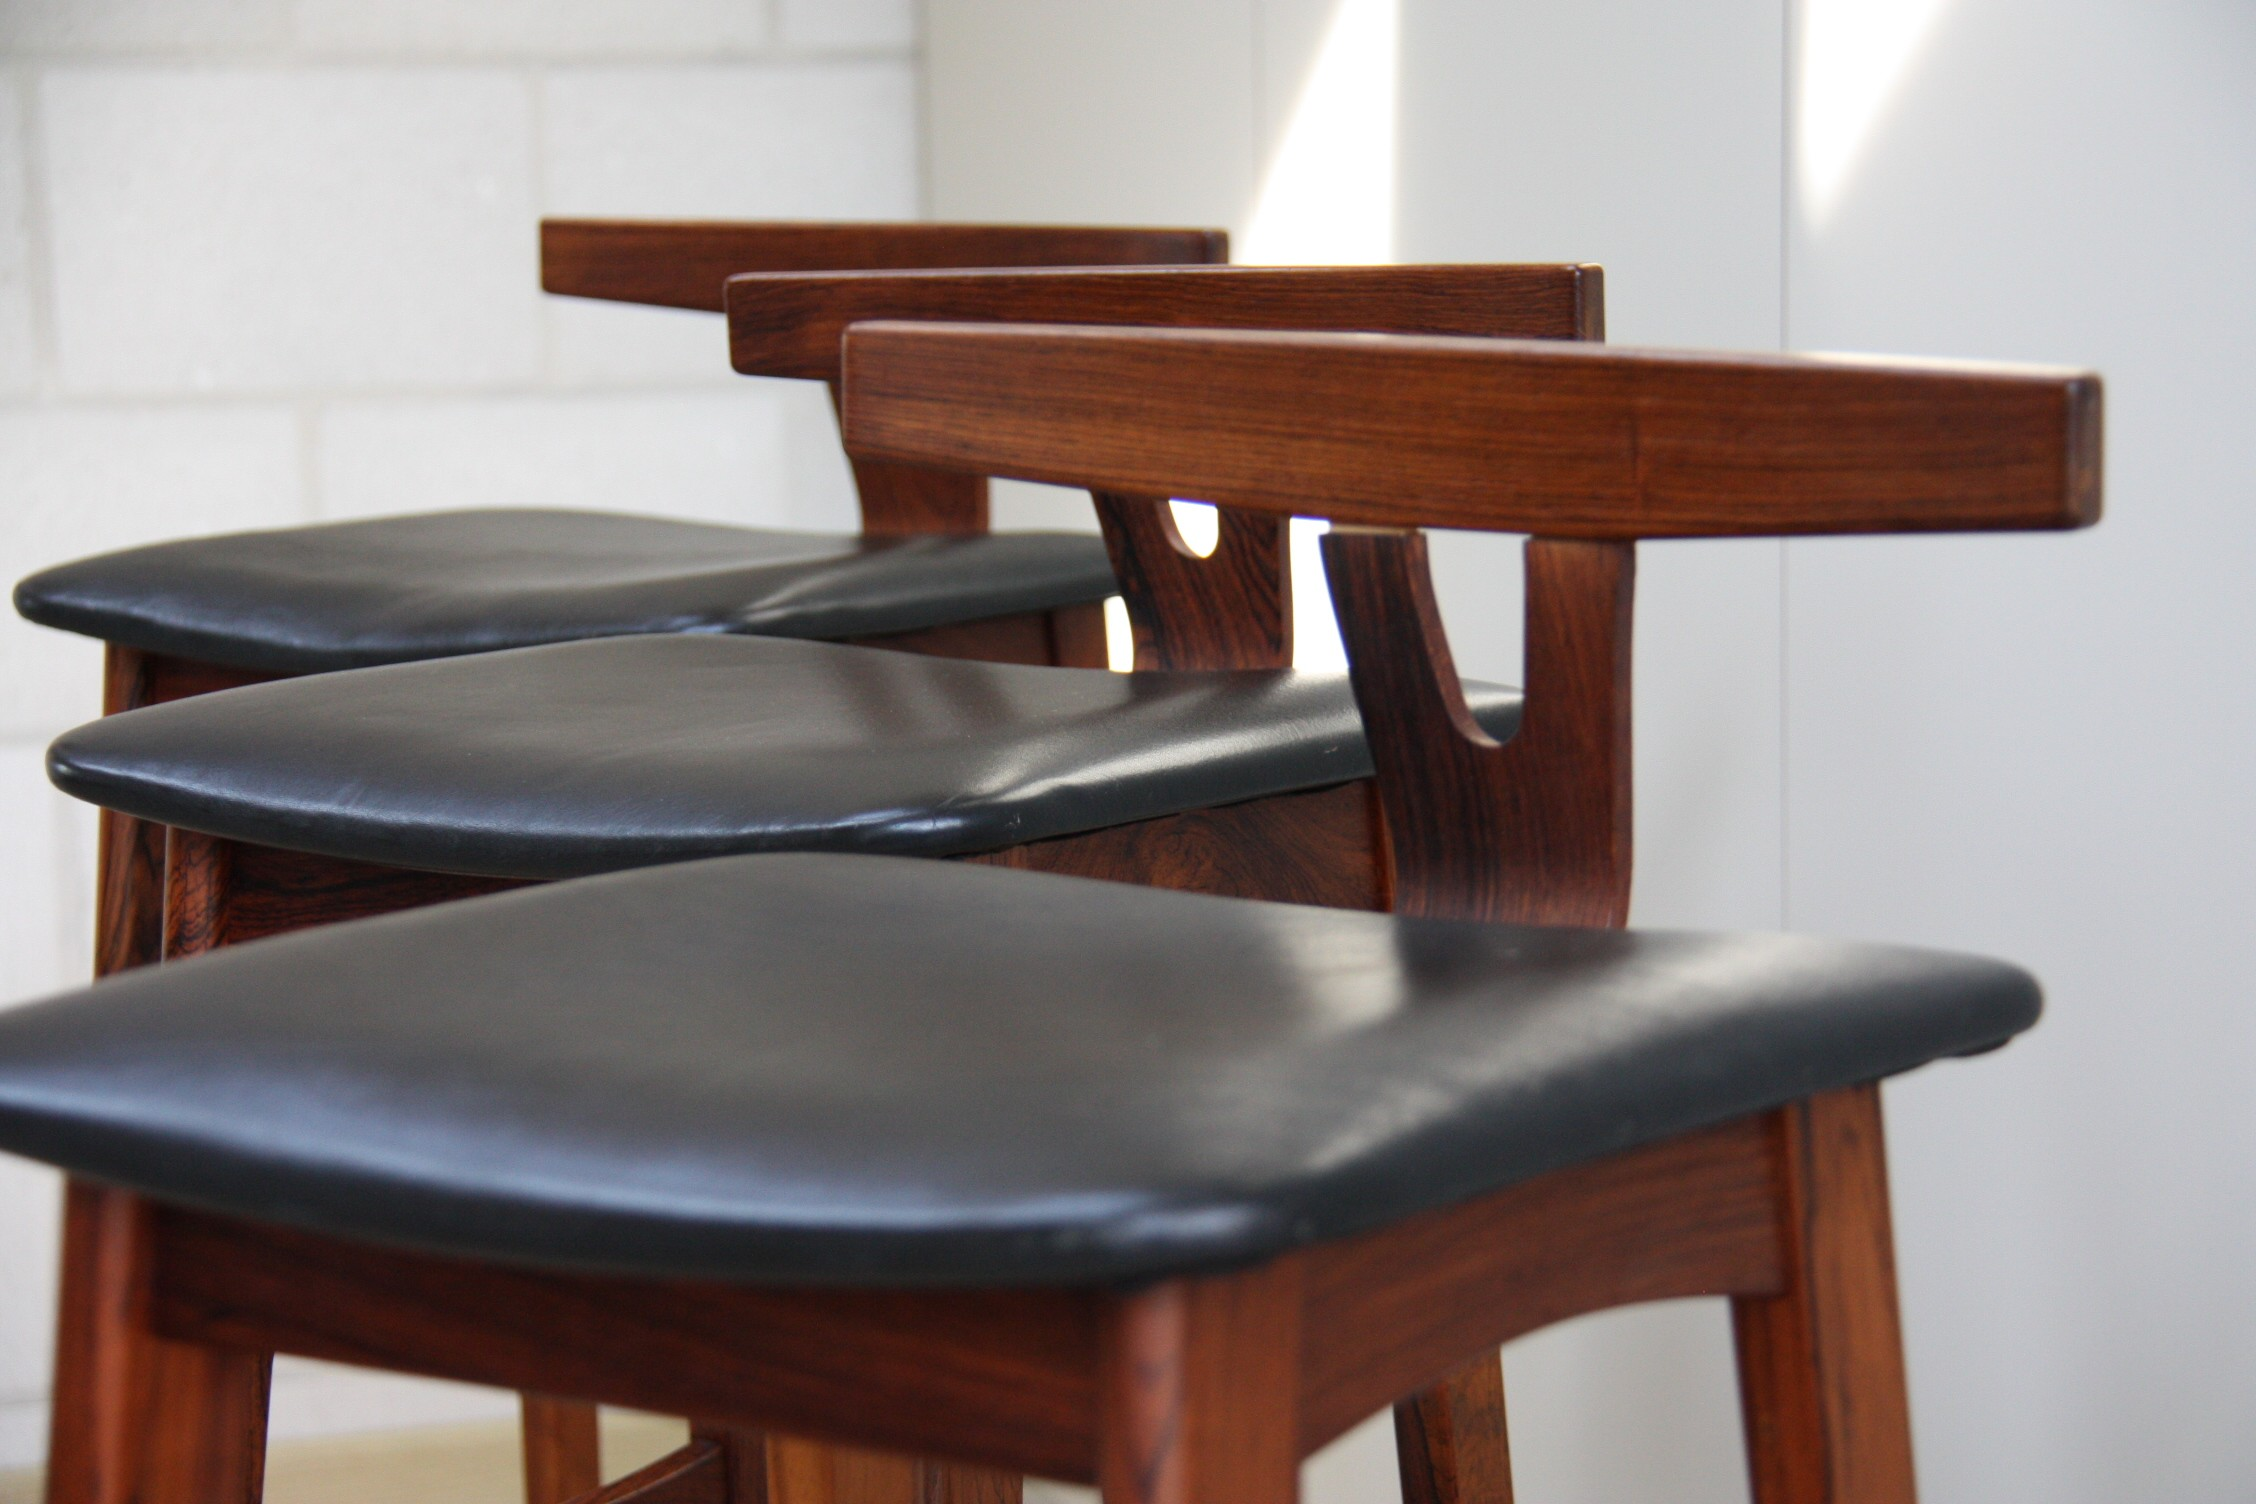 Set of 3 bar stools in rosewood by Erik Buch for Dyrlund 1960s